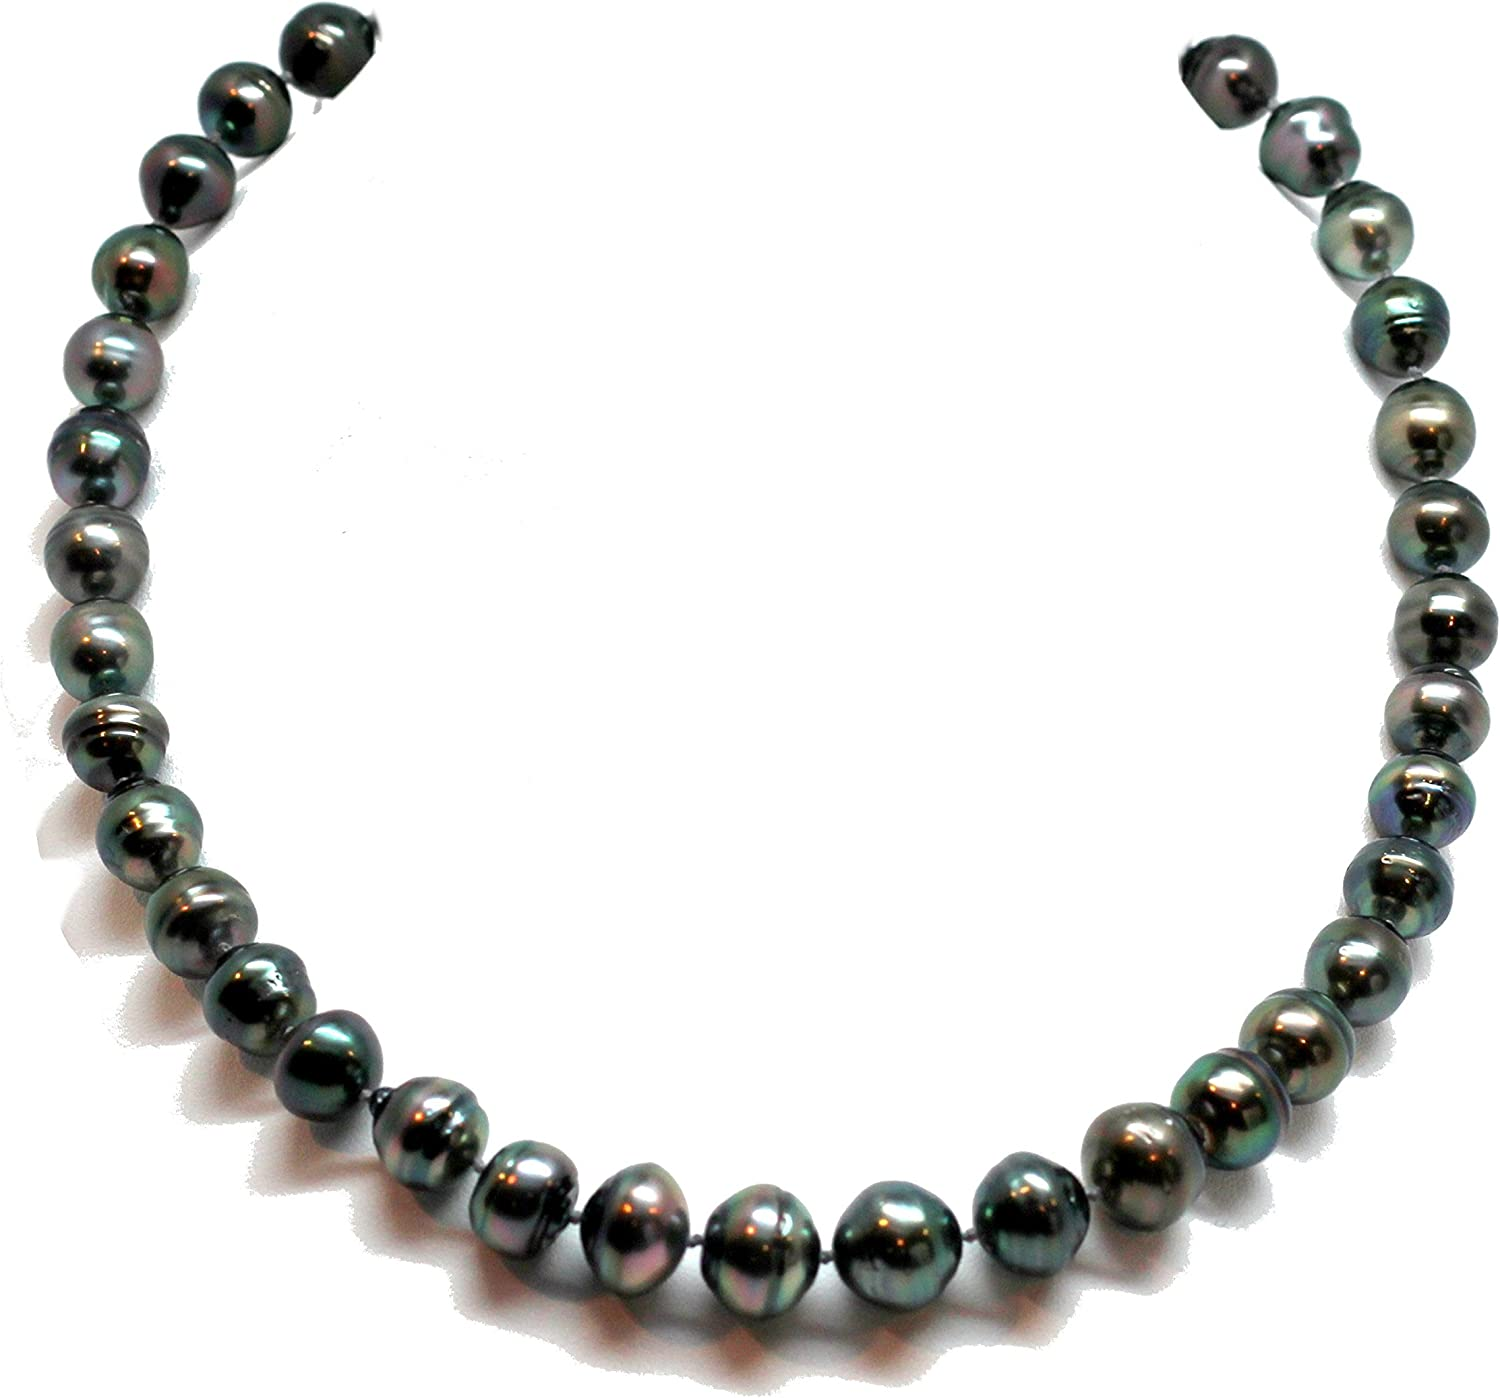 "100/"" 7-8mm Peacock Black Freshwater Pearl Necklace Strands Cultured"